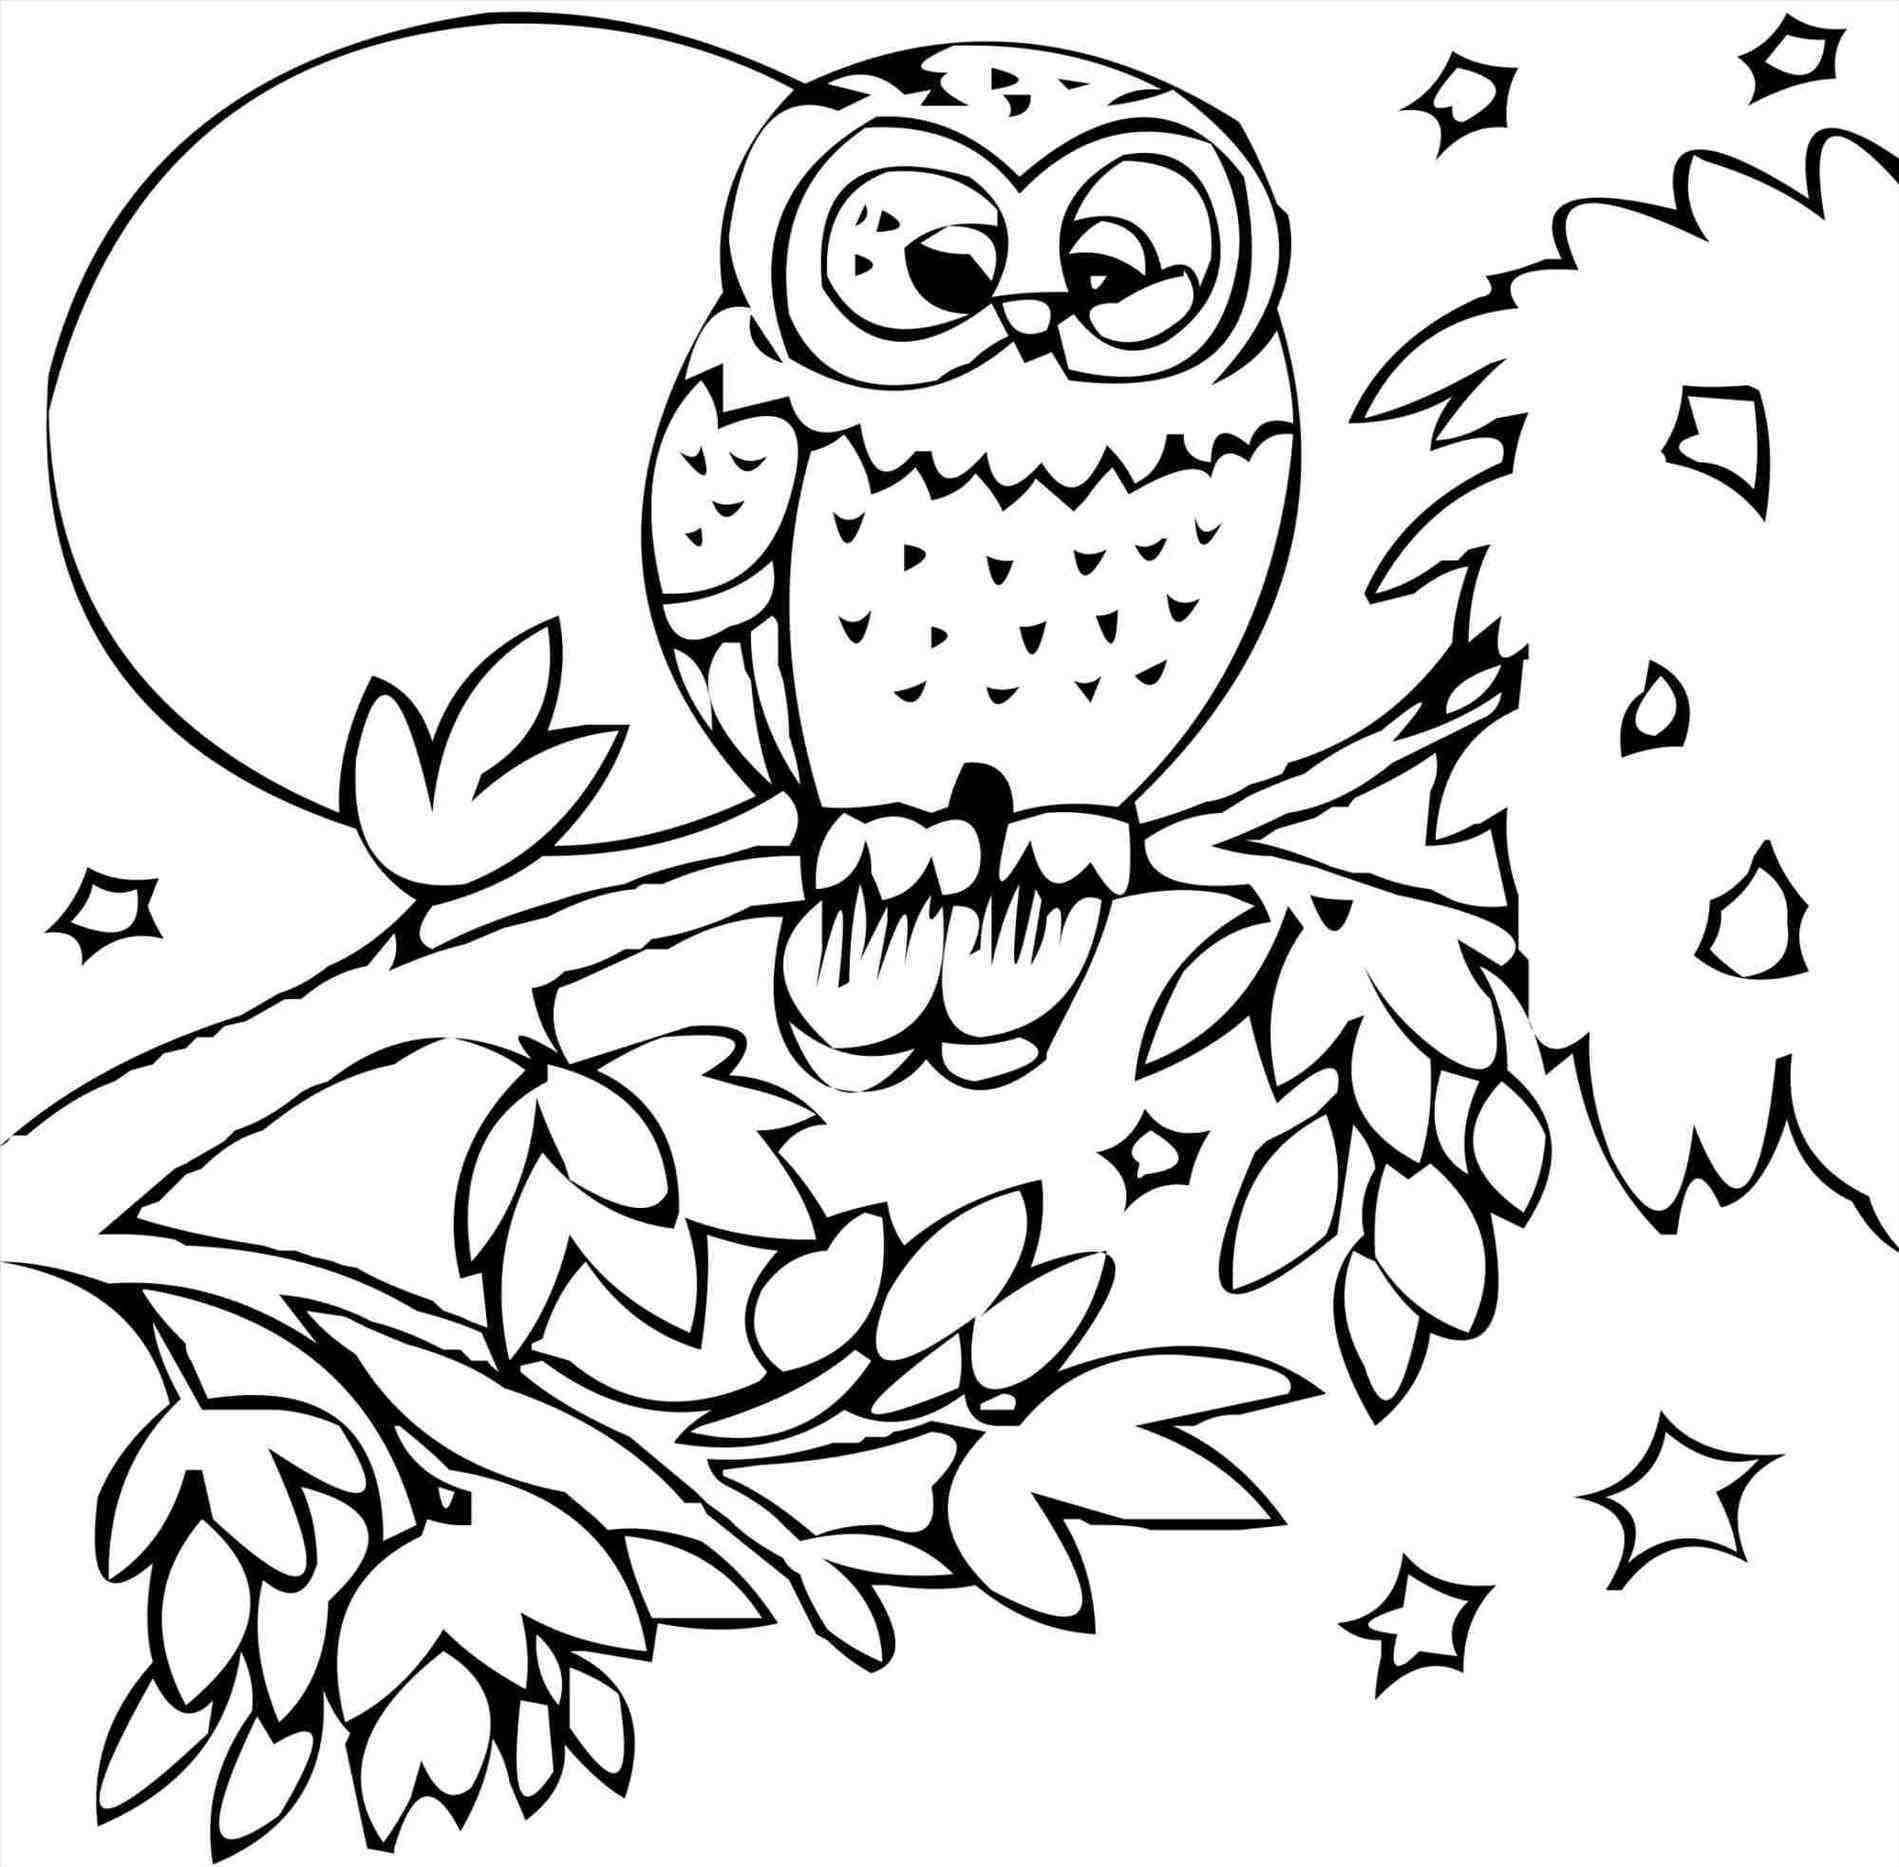 coloring pages of nature and animals backyard animals and nature coloring books coloring coloring of and nature pages animals